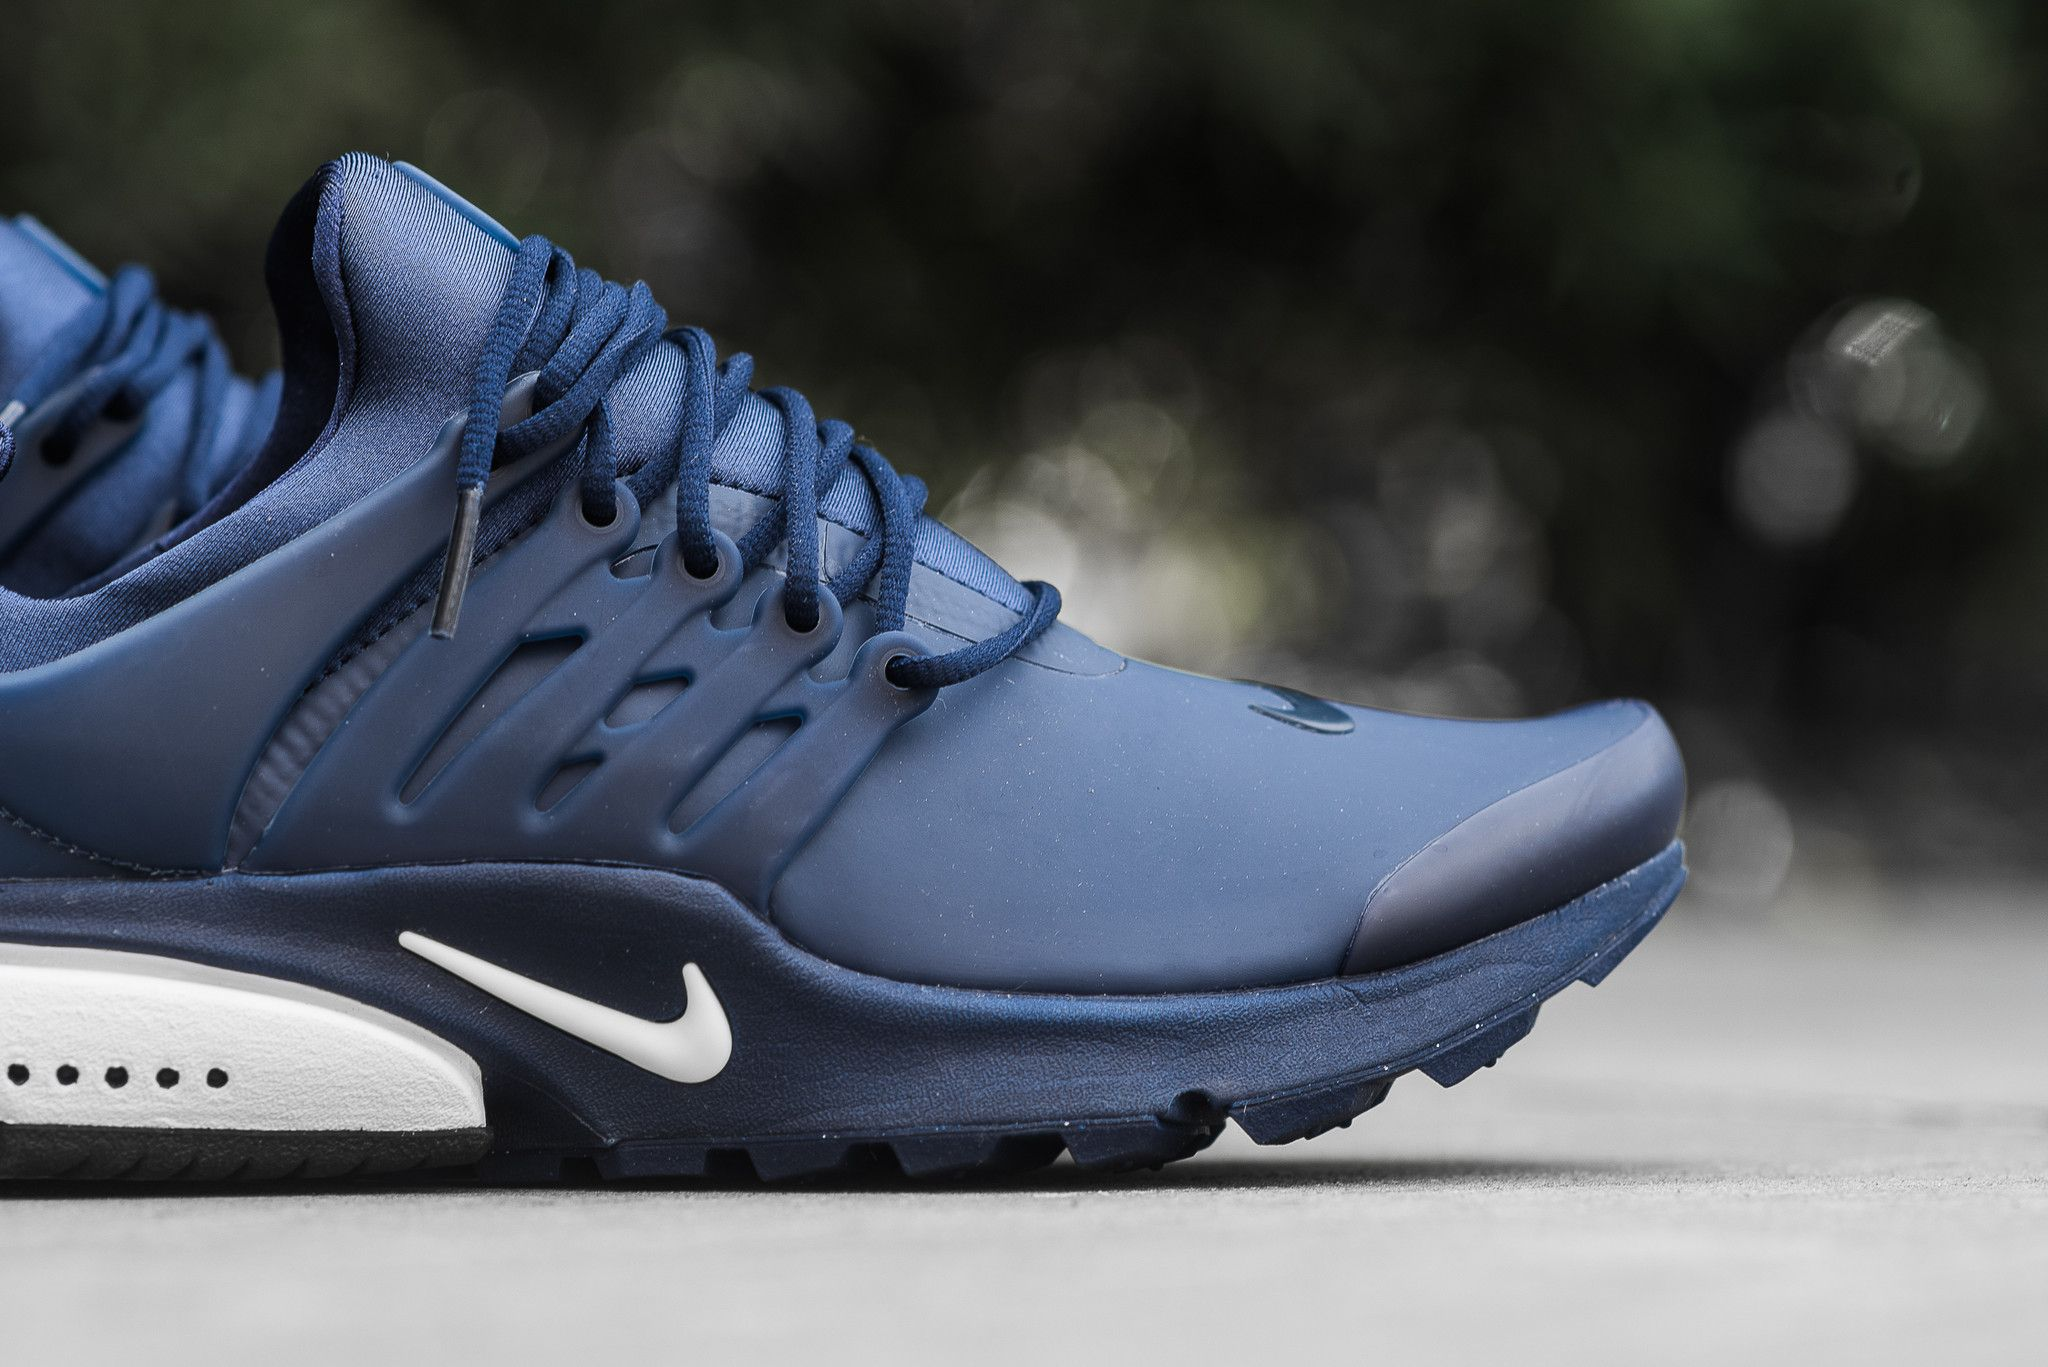 The Nike Air Presto Low Utility Is Covered In Binary Blue • KicksOnFire.com